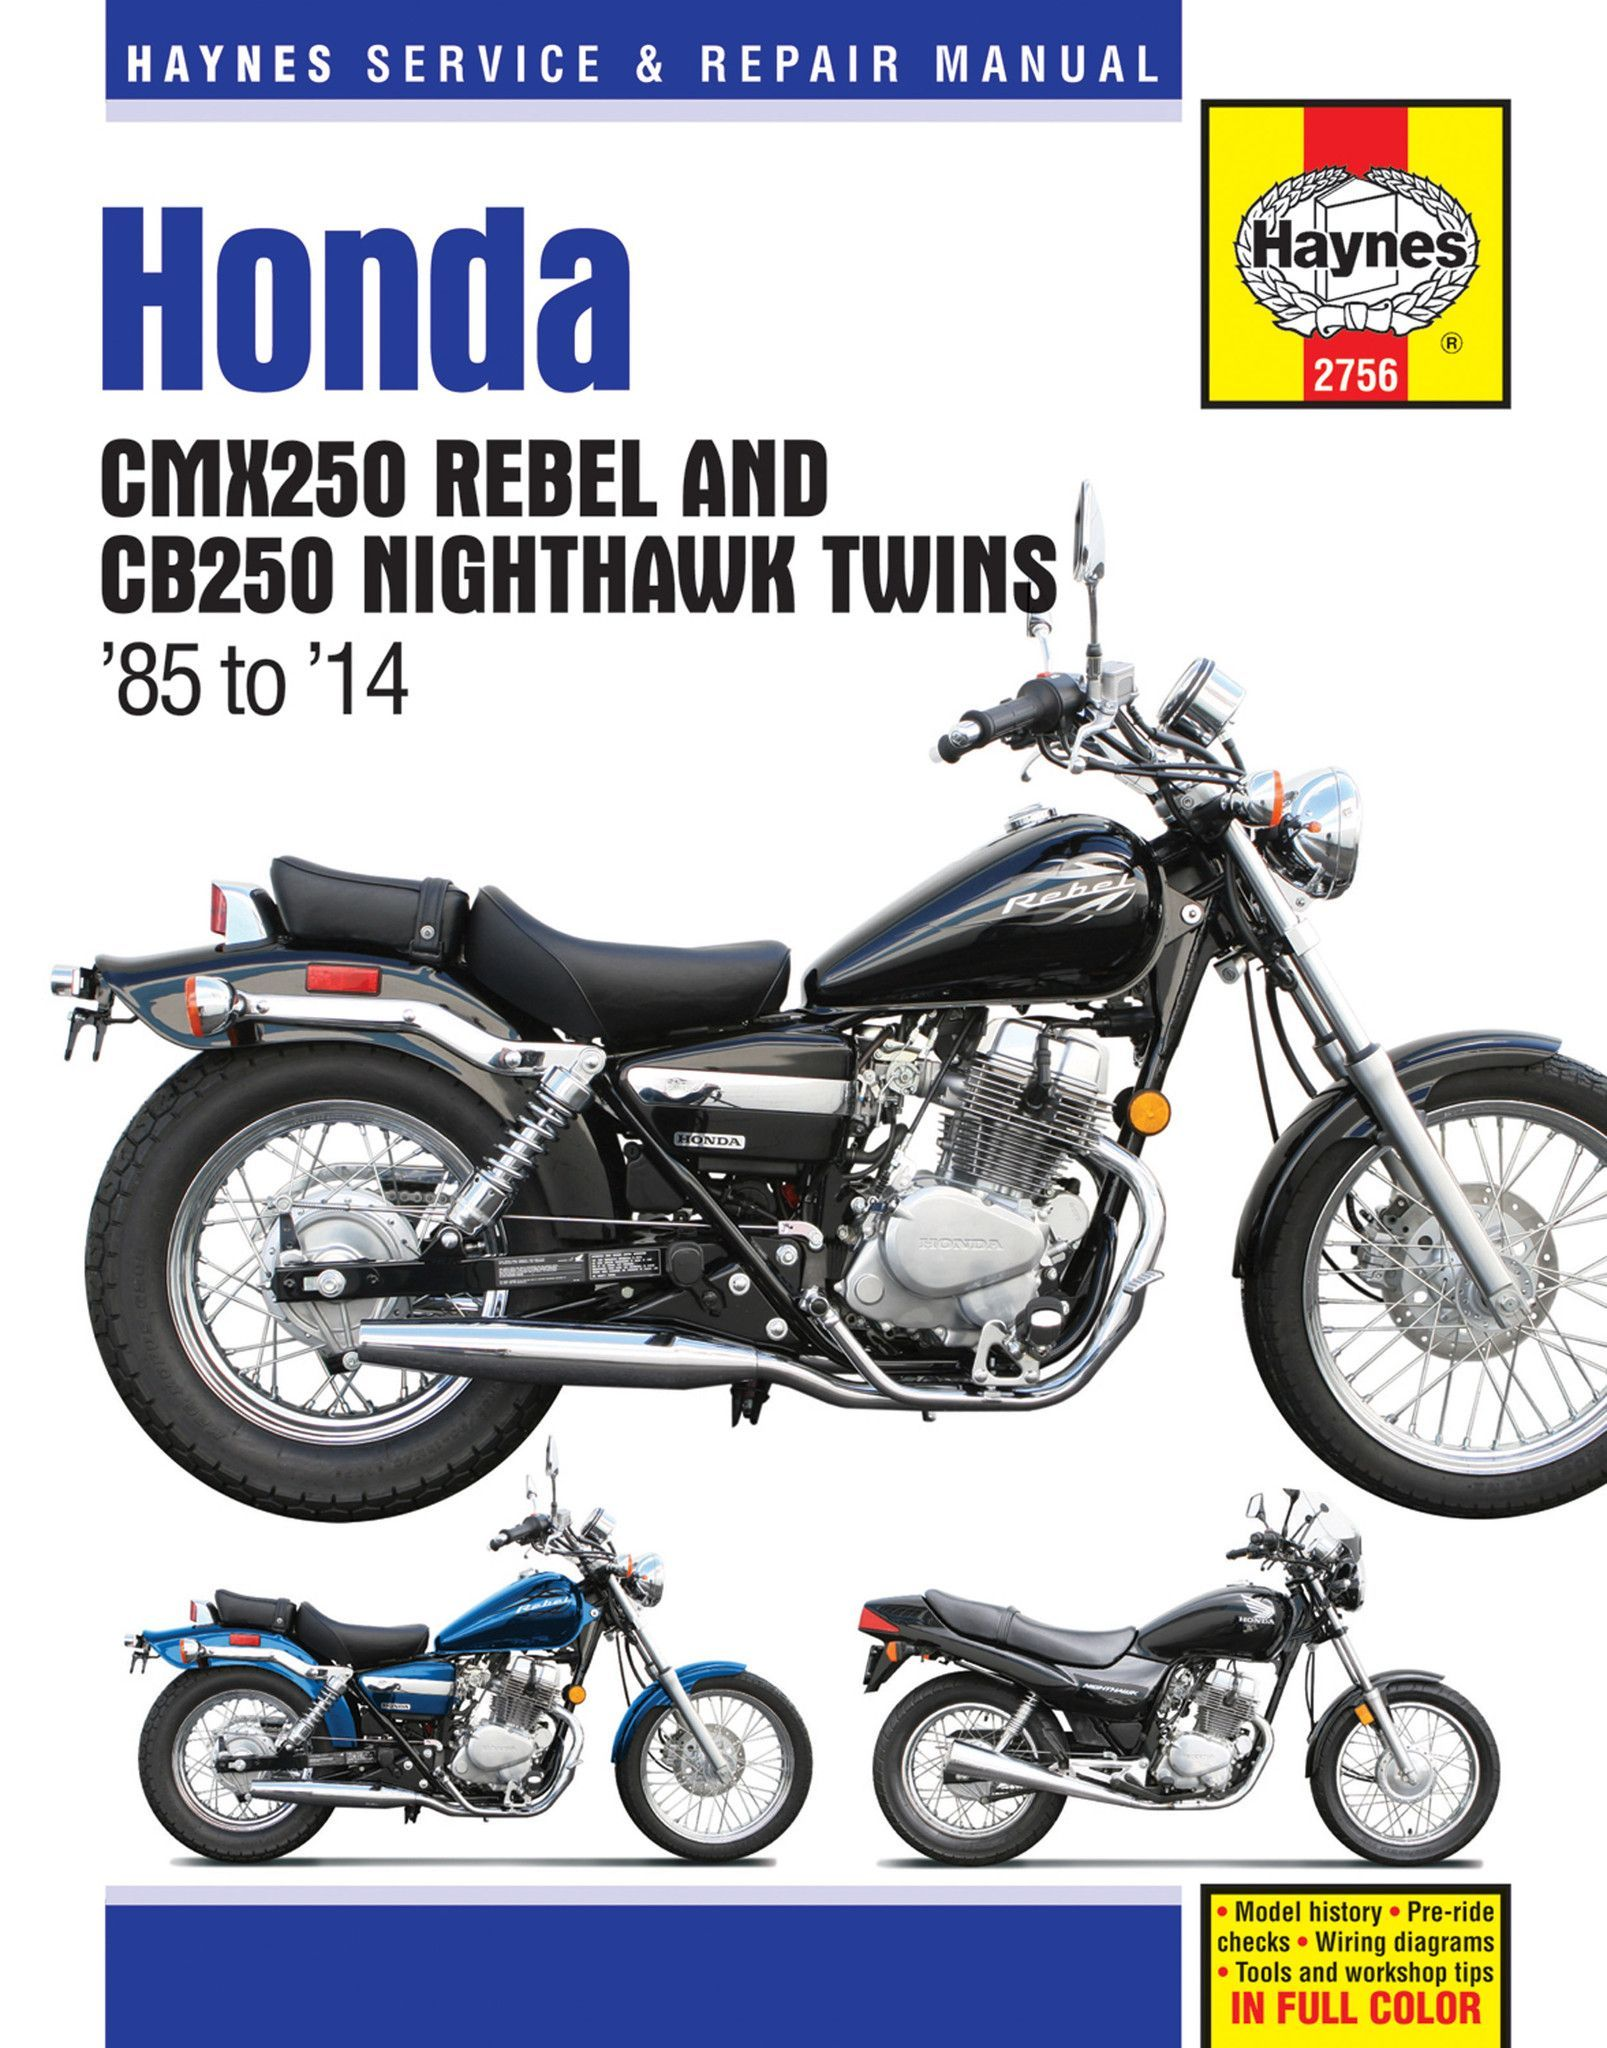 haynes m2756 service repair manual for 1985 14 honda cmx250 rh pinterest com 2008 honda rebel owners manual pdf 2008 honda shadow aero 750 owners manual